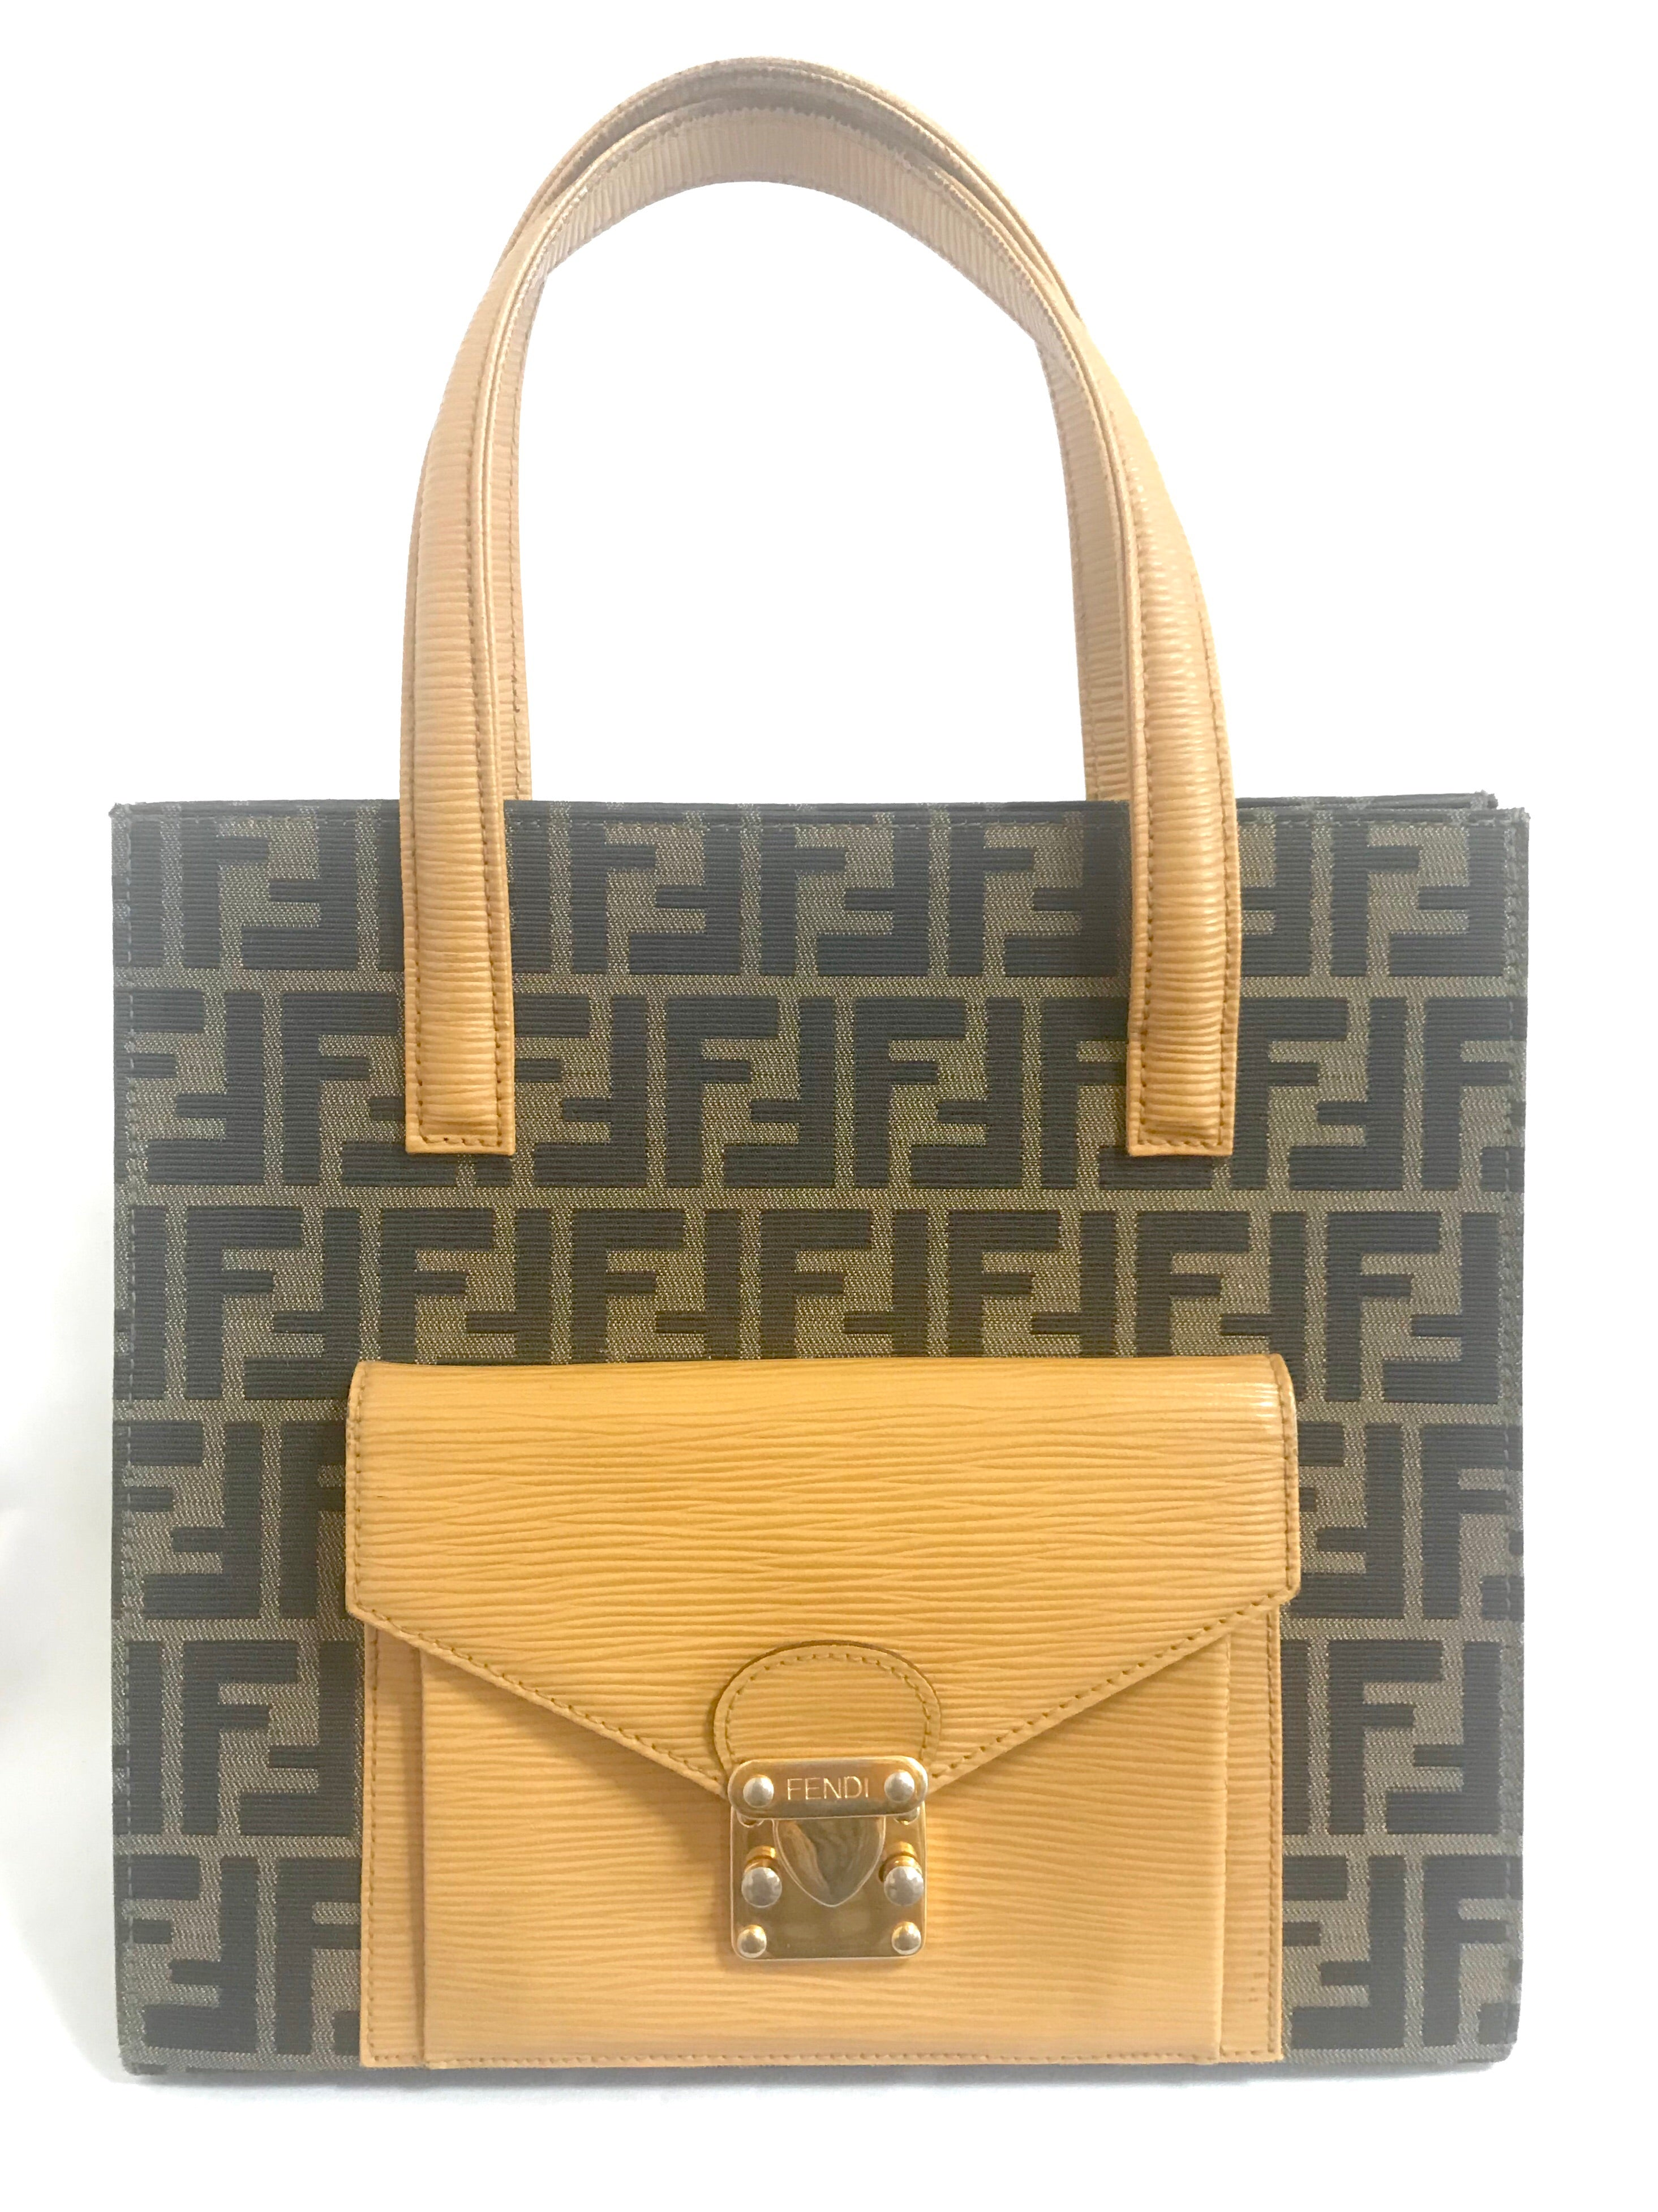 Vintage FENDI classic logo pecan jacquard and mustard yellow epi leather  tote bag with golden closure bcc3c0ac4c8ce